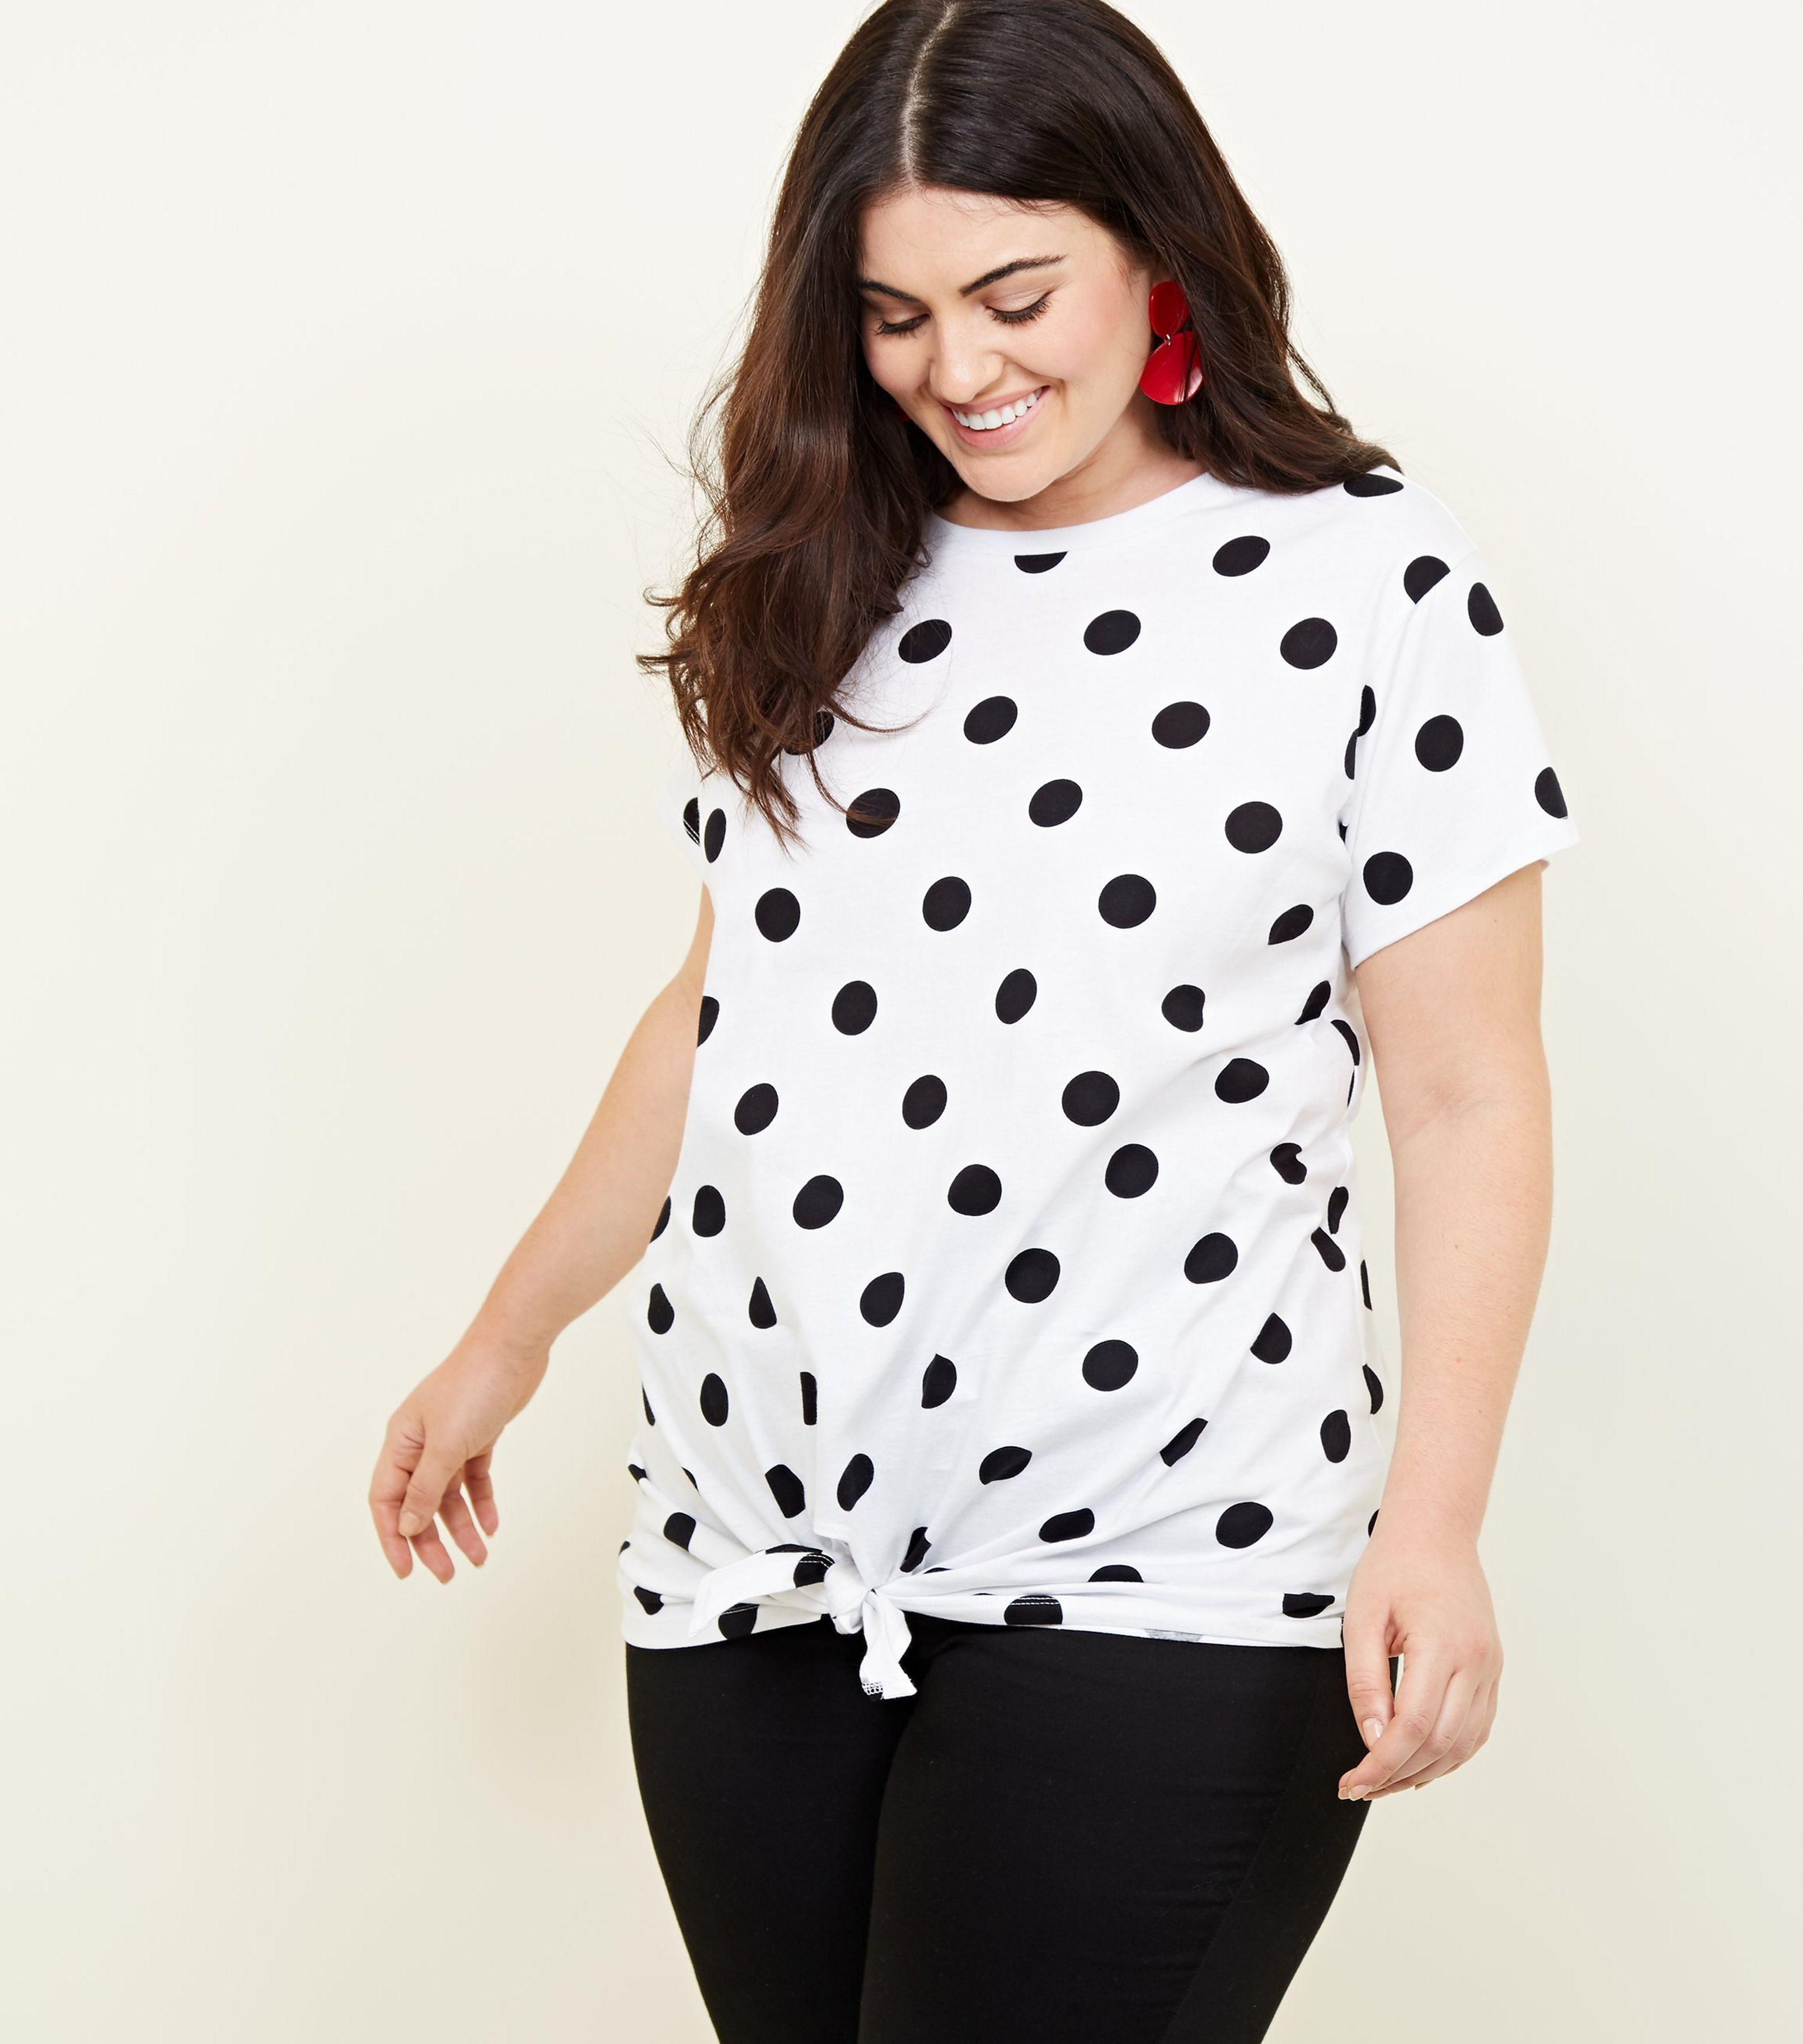 aa33eab1f62f49 New Look Curves White Polka Dot Tie Front T-shirt in White - Lyst